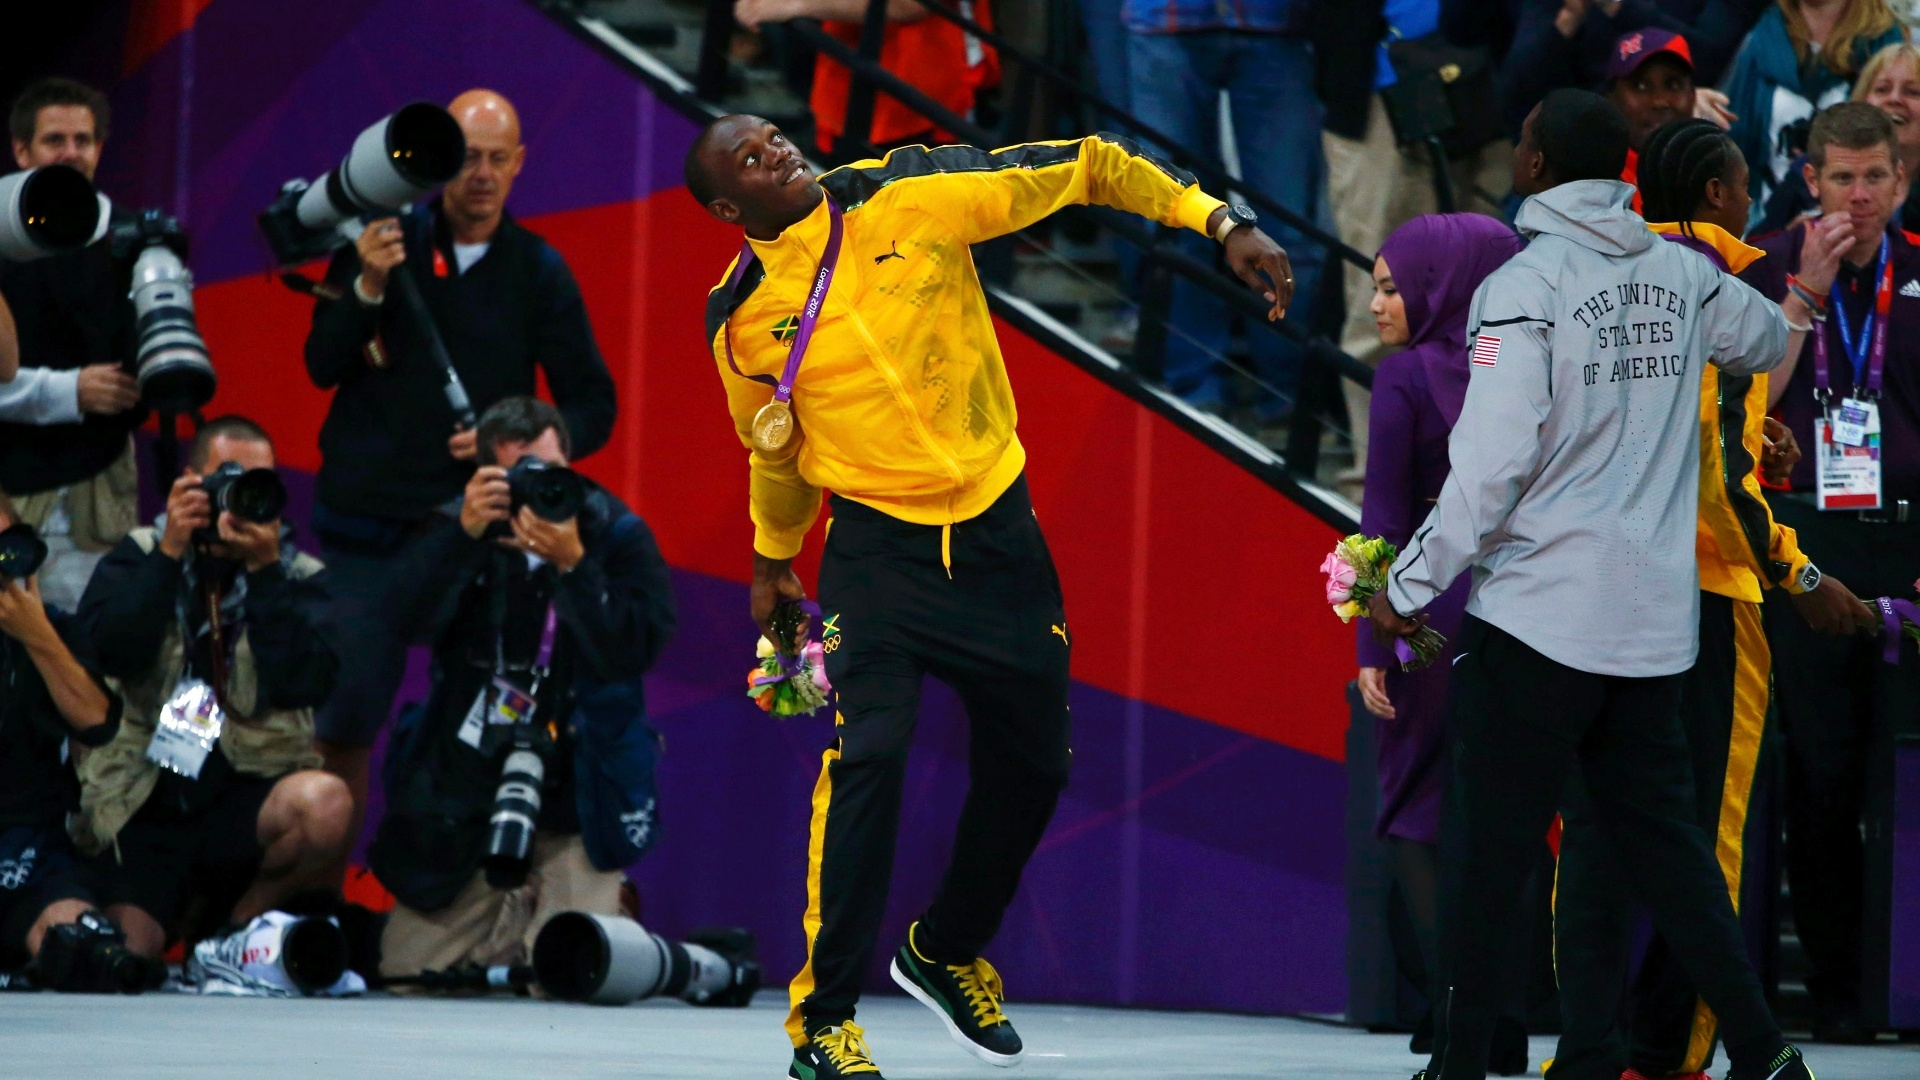 Medalhista de ouro Usain Bolt joga para o ar buqu de flores, aps cerimnia de premiao dos 100 m rasos dos Jogos de Londres